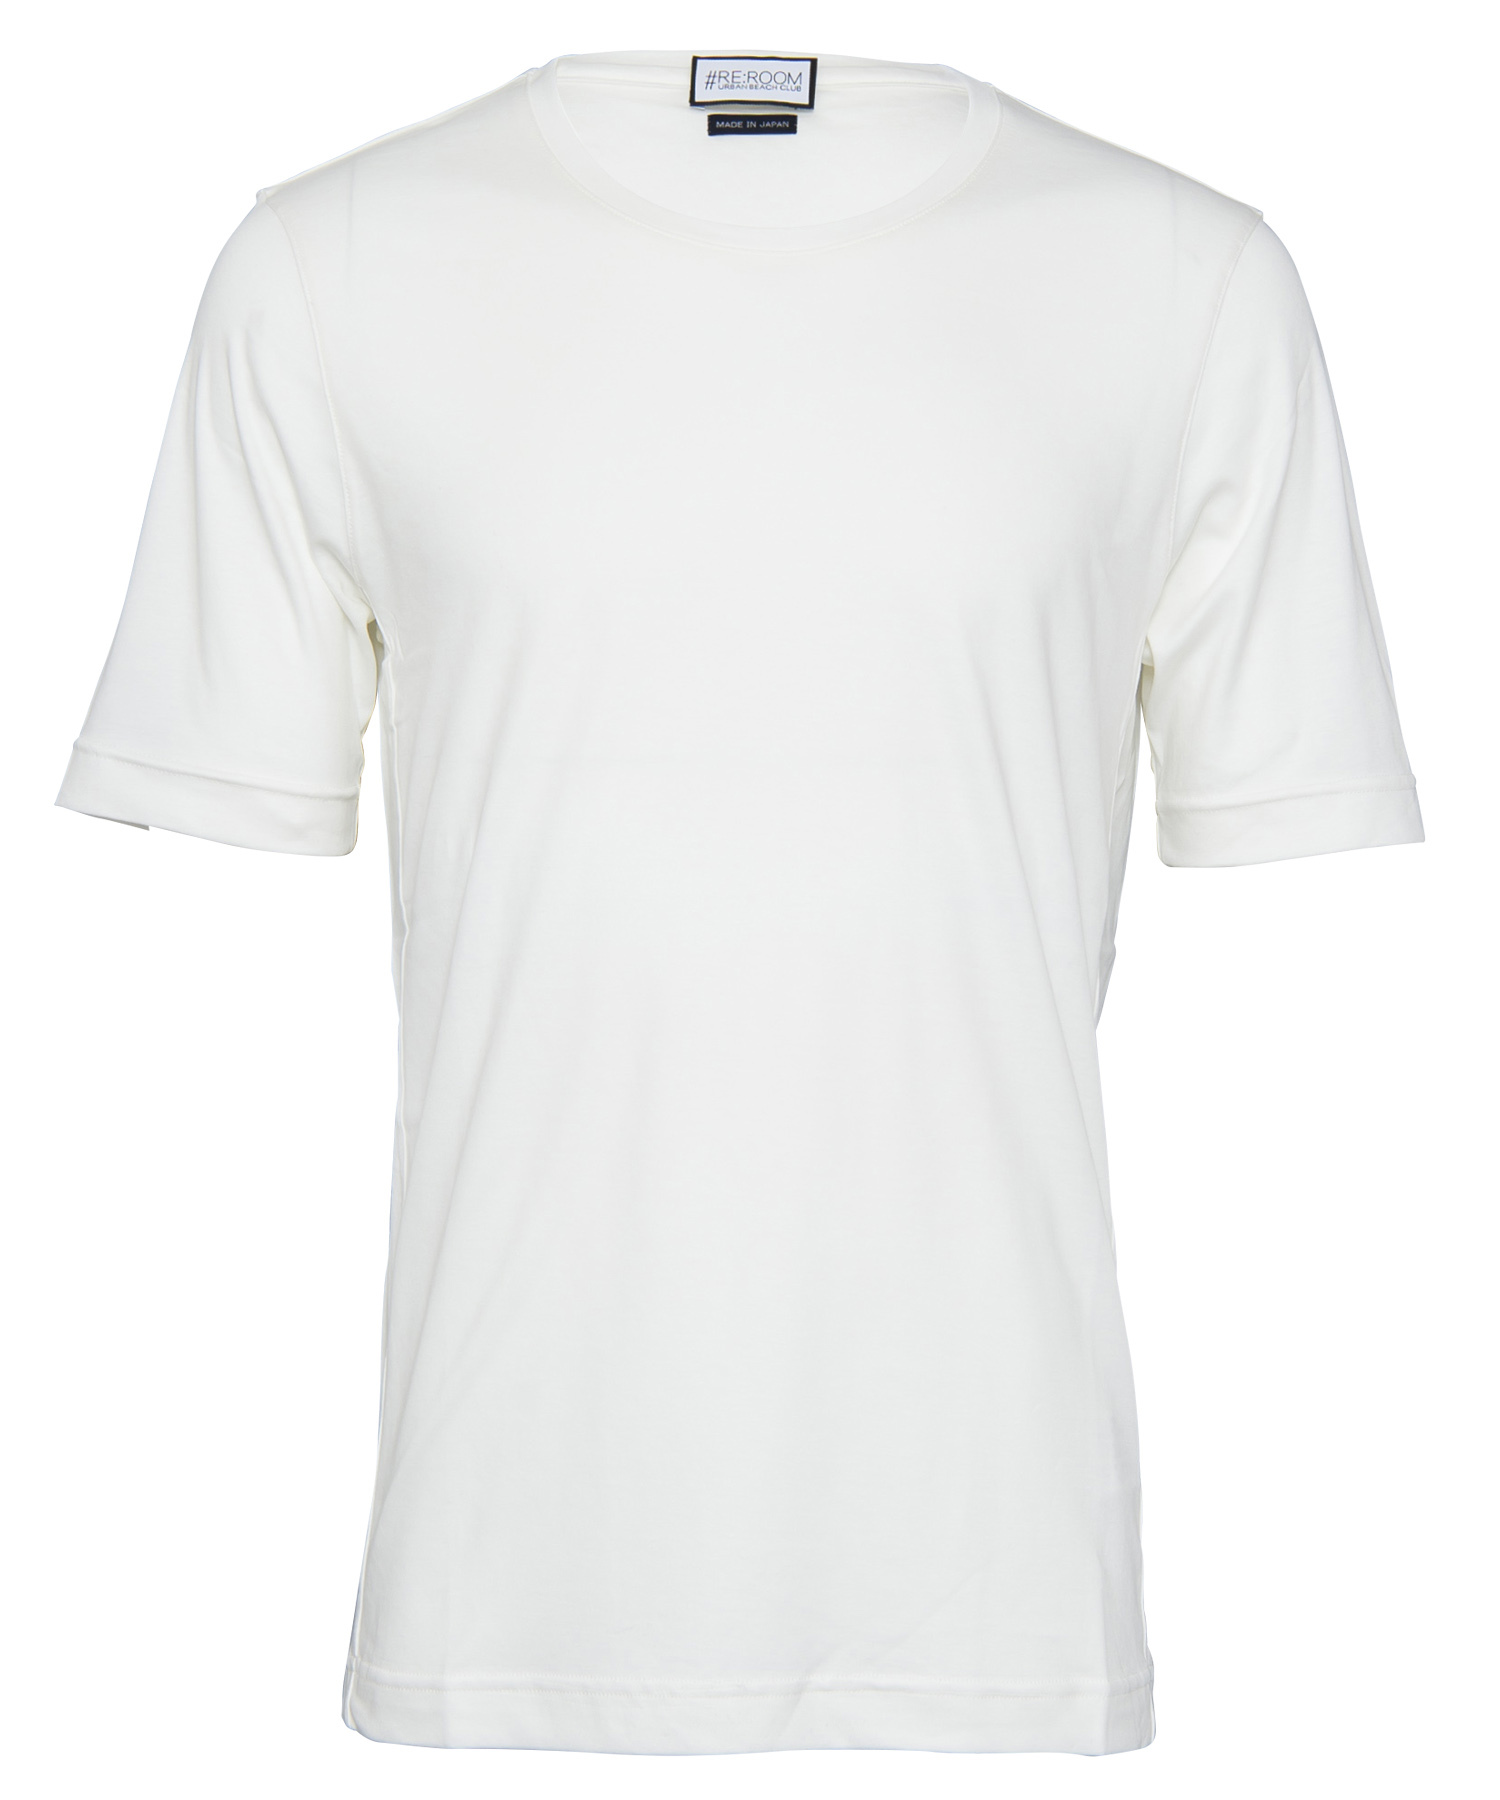 PREMIUM COTTON DRESS CREW NECK T-shirts[RUC001]